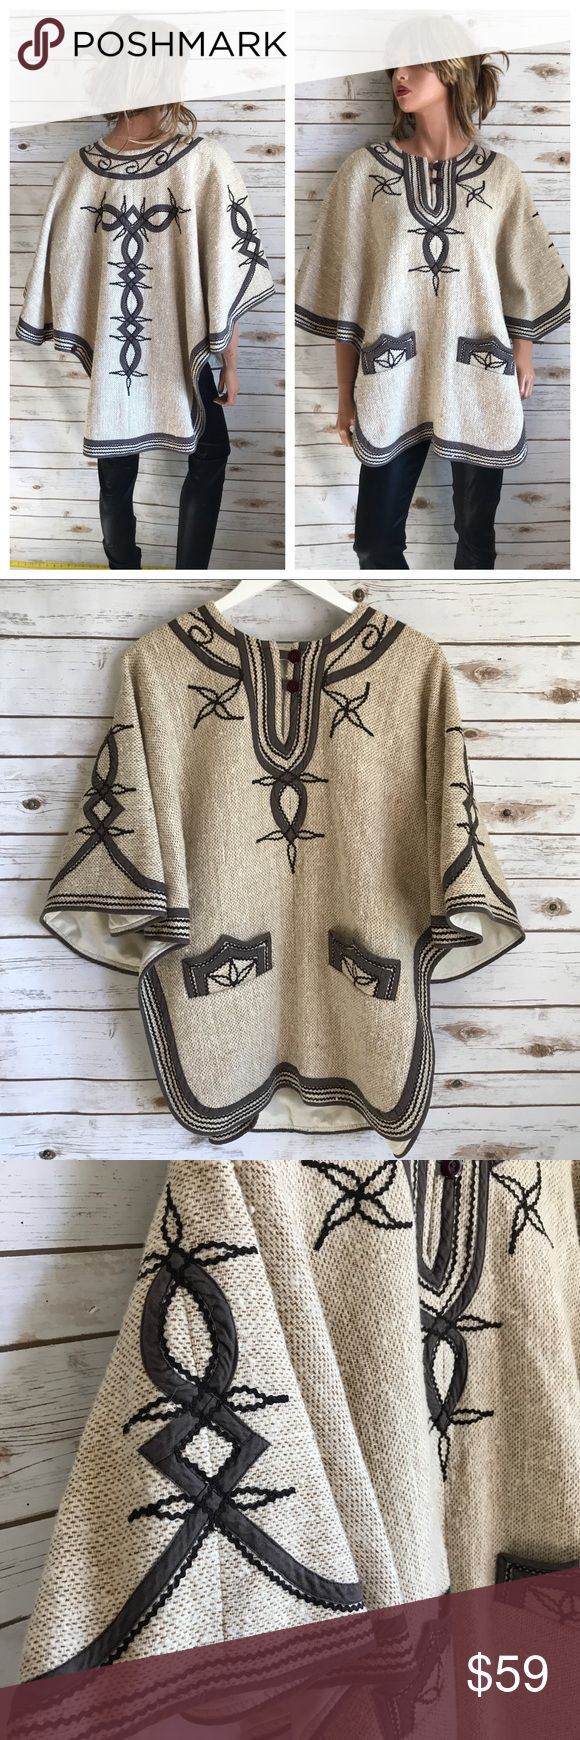 Vintage Boho Poncho - Great Quality! Vintage Boho Poncho - Great Quality! Unique find - won't find another like this for sale. Natural fibers, heavy fabric, lined Beautiful embroidery & trim One size - meaning it fits all sizes.  It has buttons near the bottom to create a separation for sleeves.  Thank you for looking and please check out the rest of my closet. Jackets & Coats Capes